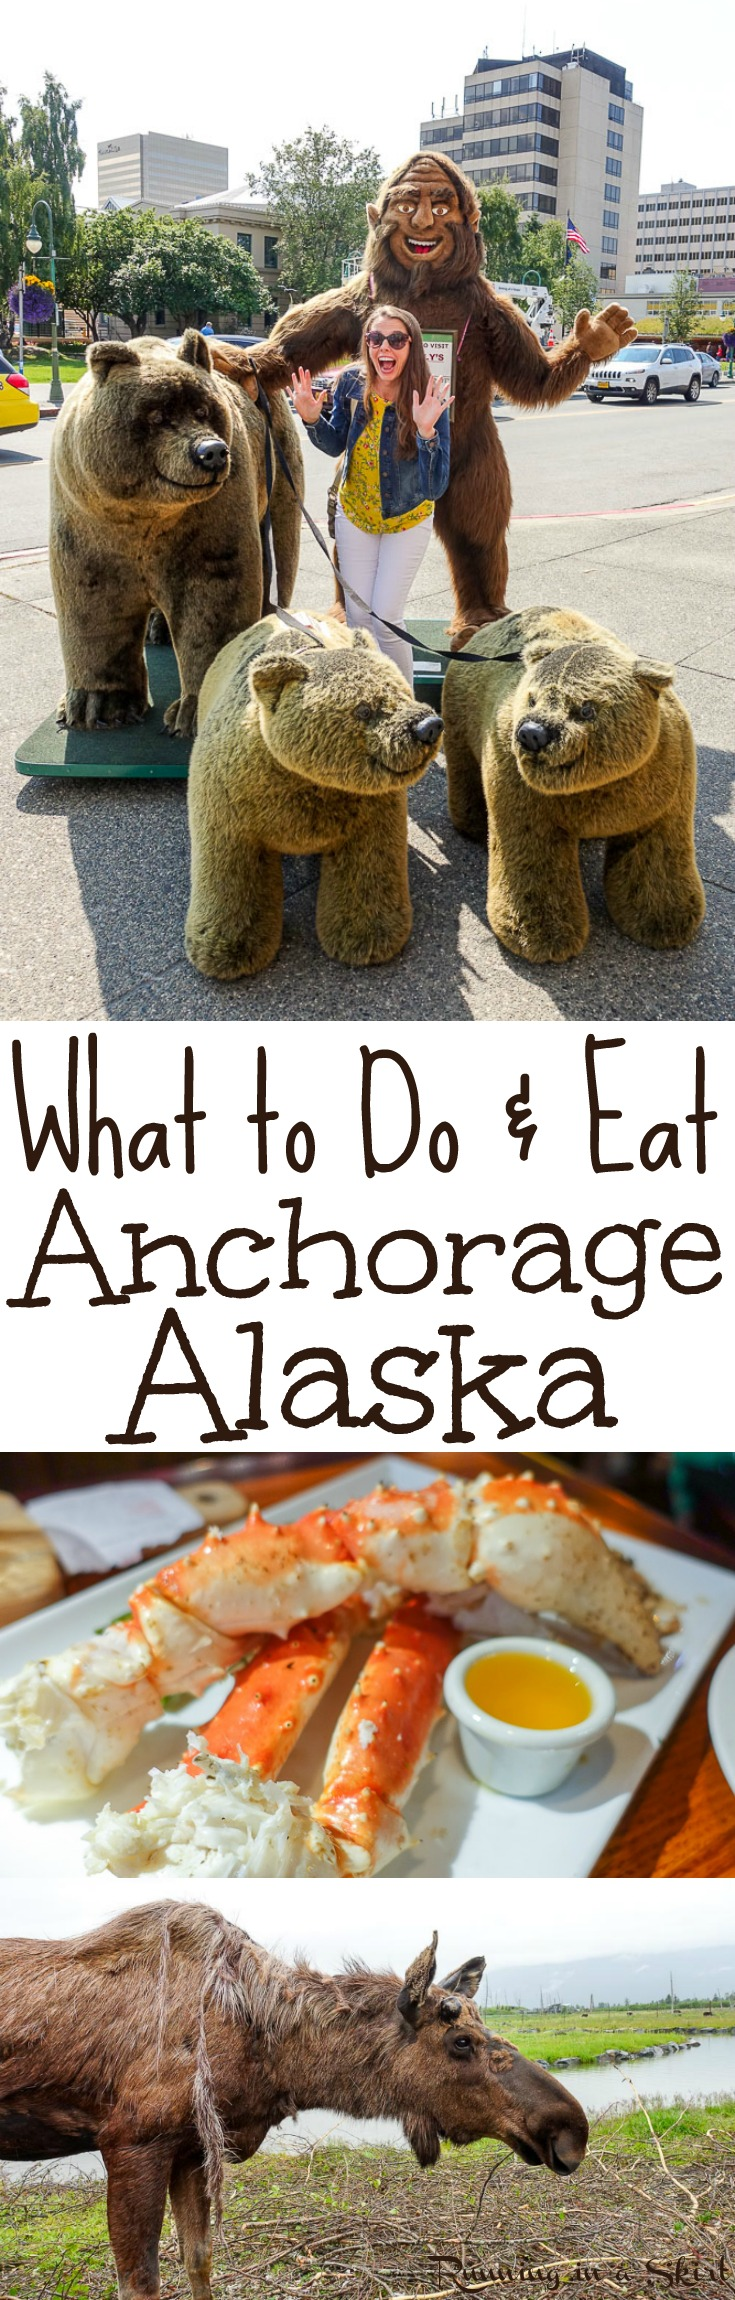 What to Do & Eat in and around Anchorage, Alaska USA- fun things to do in downtown in summer, restaurants and food, breweries and places to visit like a gold mine and Alaska Wildlife Conservation Center.  Beautiful pictures and tips of this bucket list adventure trip.  / Running in a Skirt via @juliewunder